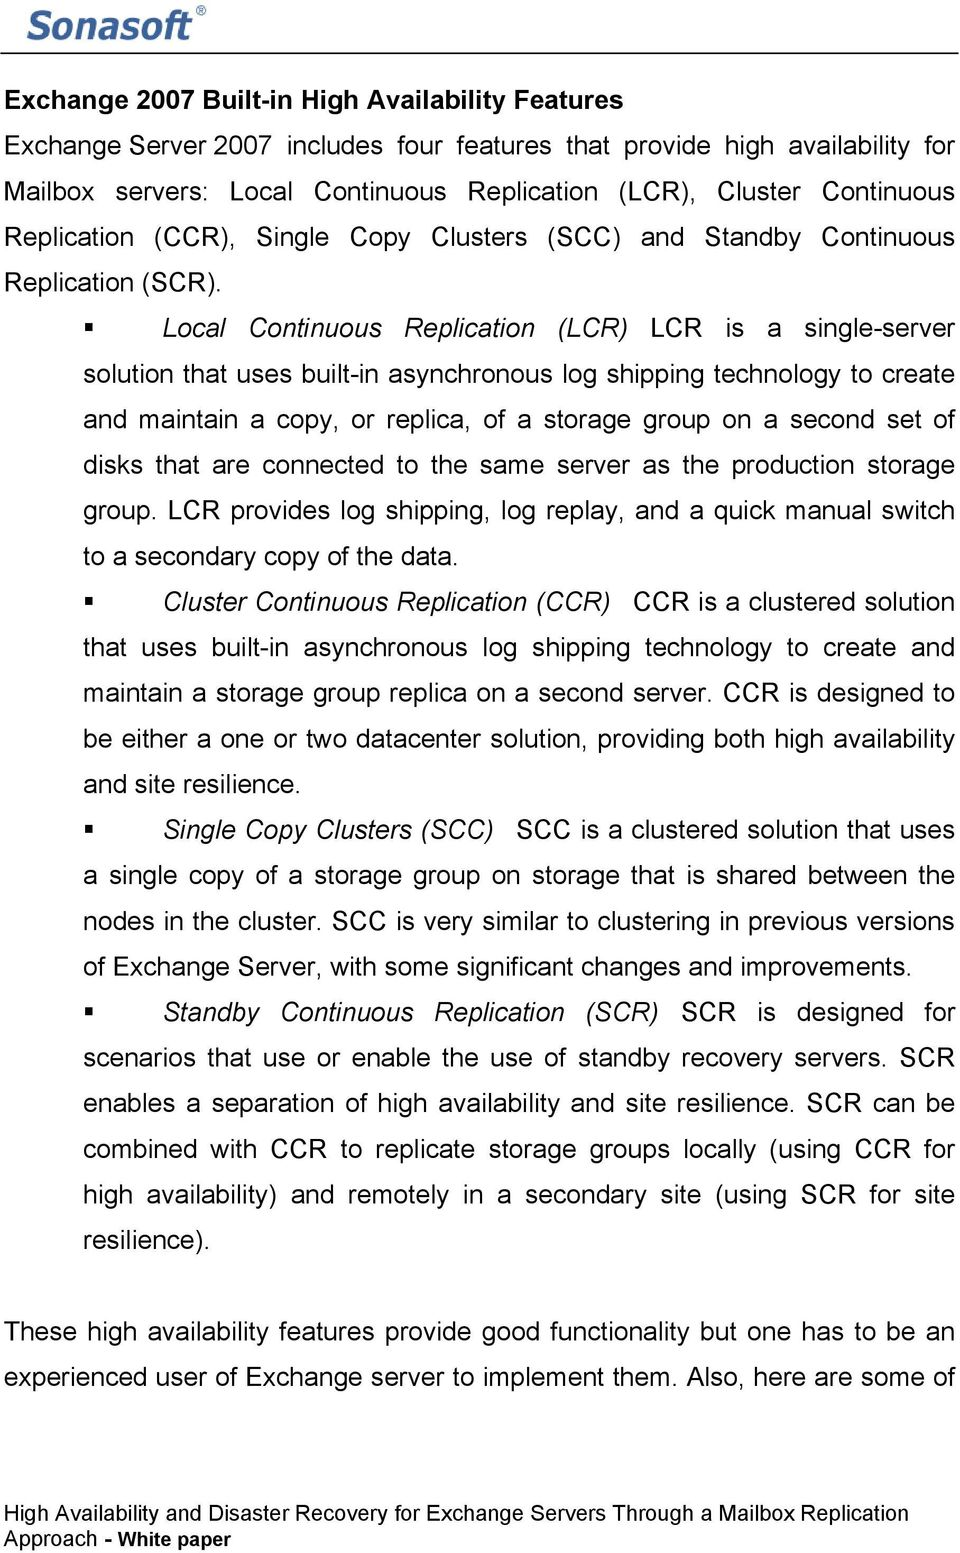 Local Continuous Replication (LCR) LCR is a single-server solution that uses built-in asynchronous log shipping technology to create and maintain a copy, or replica, of a storage group on a second